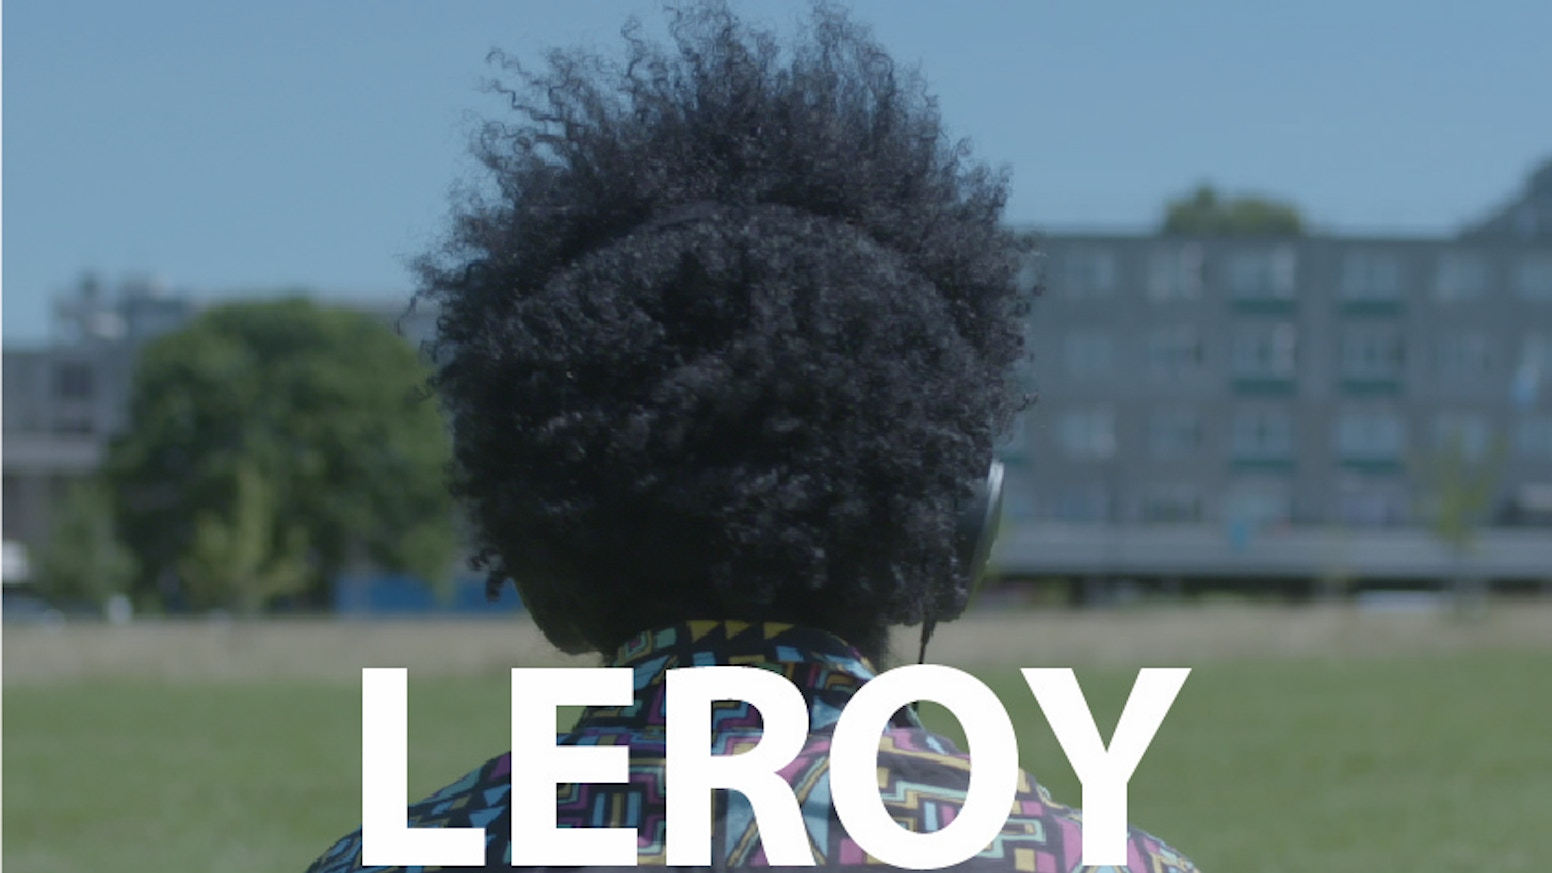 LEROY - an oddball comedy set on a North London estate. A coming-of-age story exploring the realities of growing up in a 'man's world'.